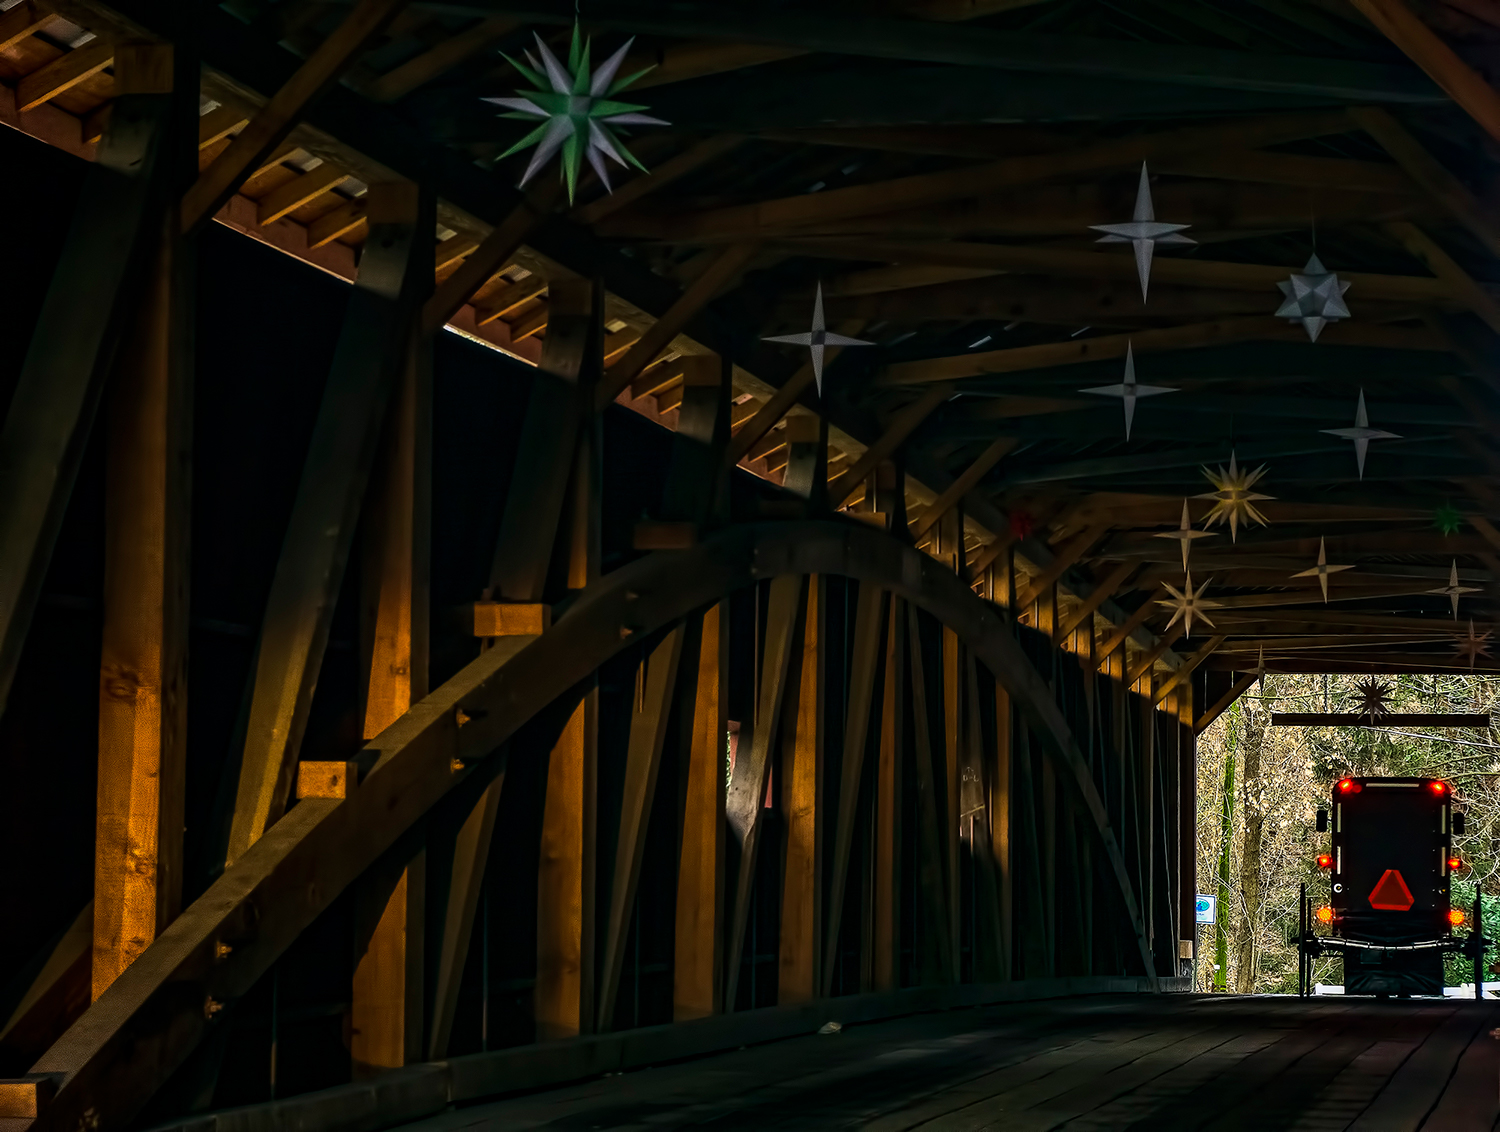 Christmas Magic - Moravian Stars hanging in one of the area's covered bridges provide a uniquely Lancaster landscape during the Christmas season.